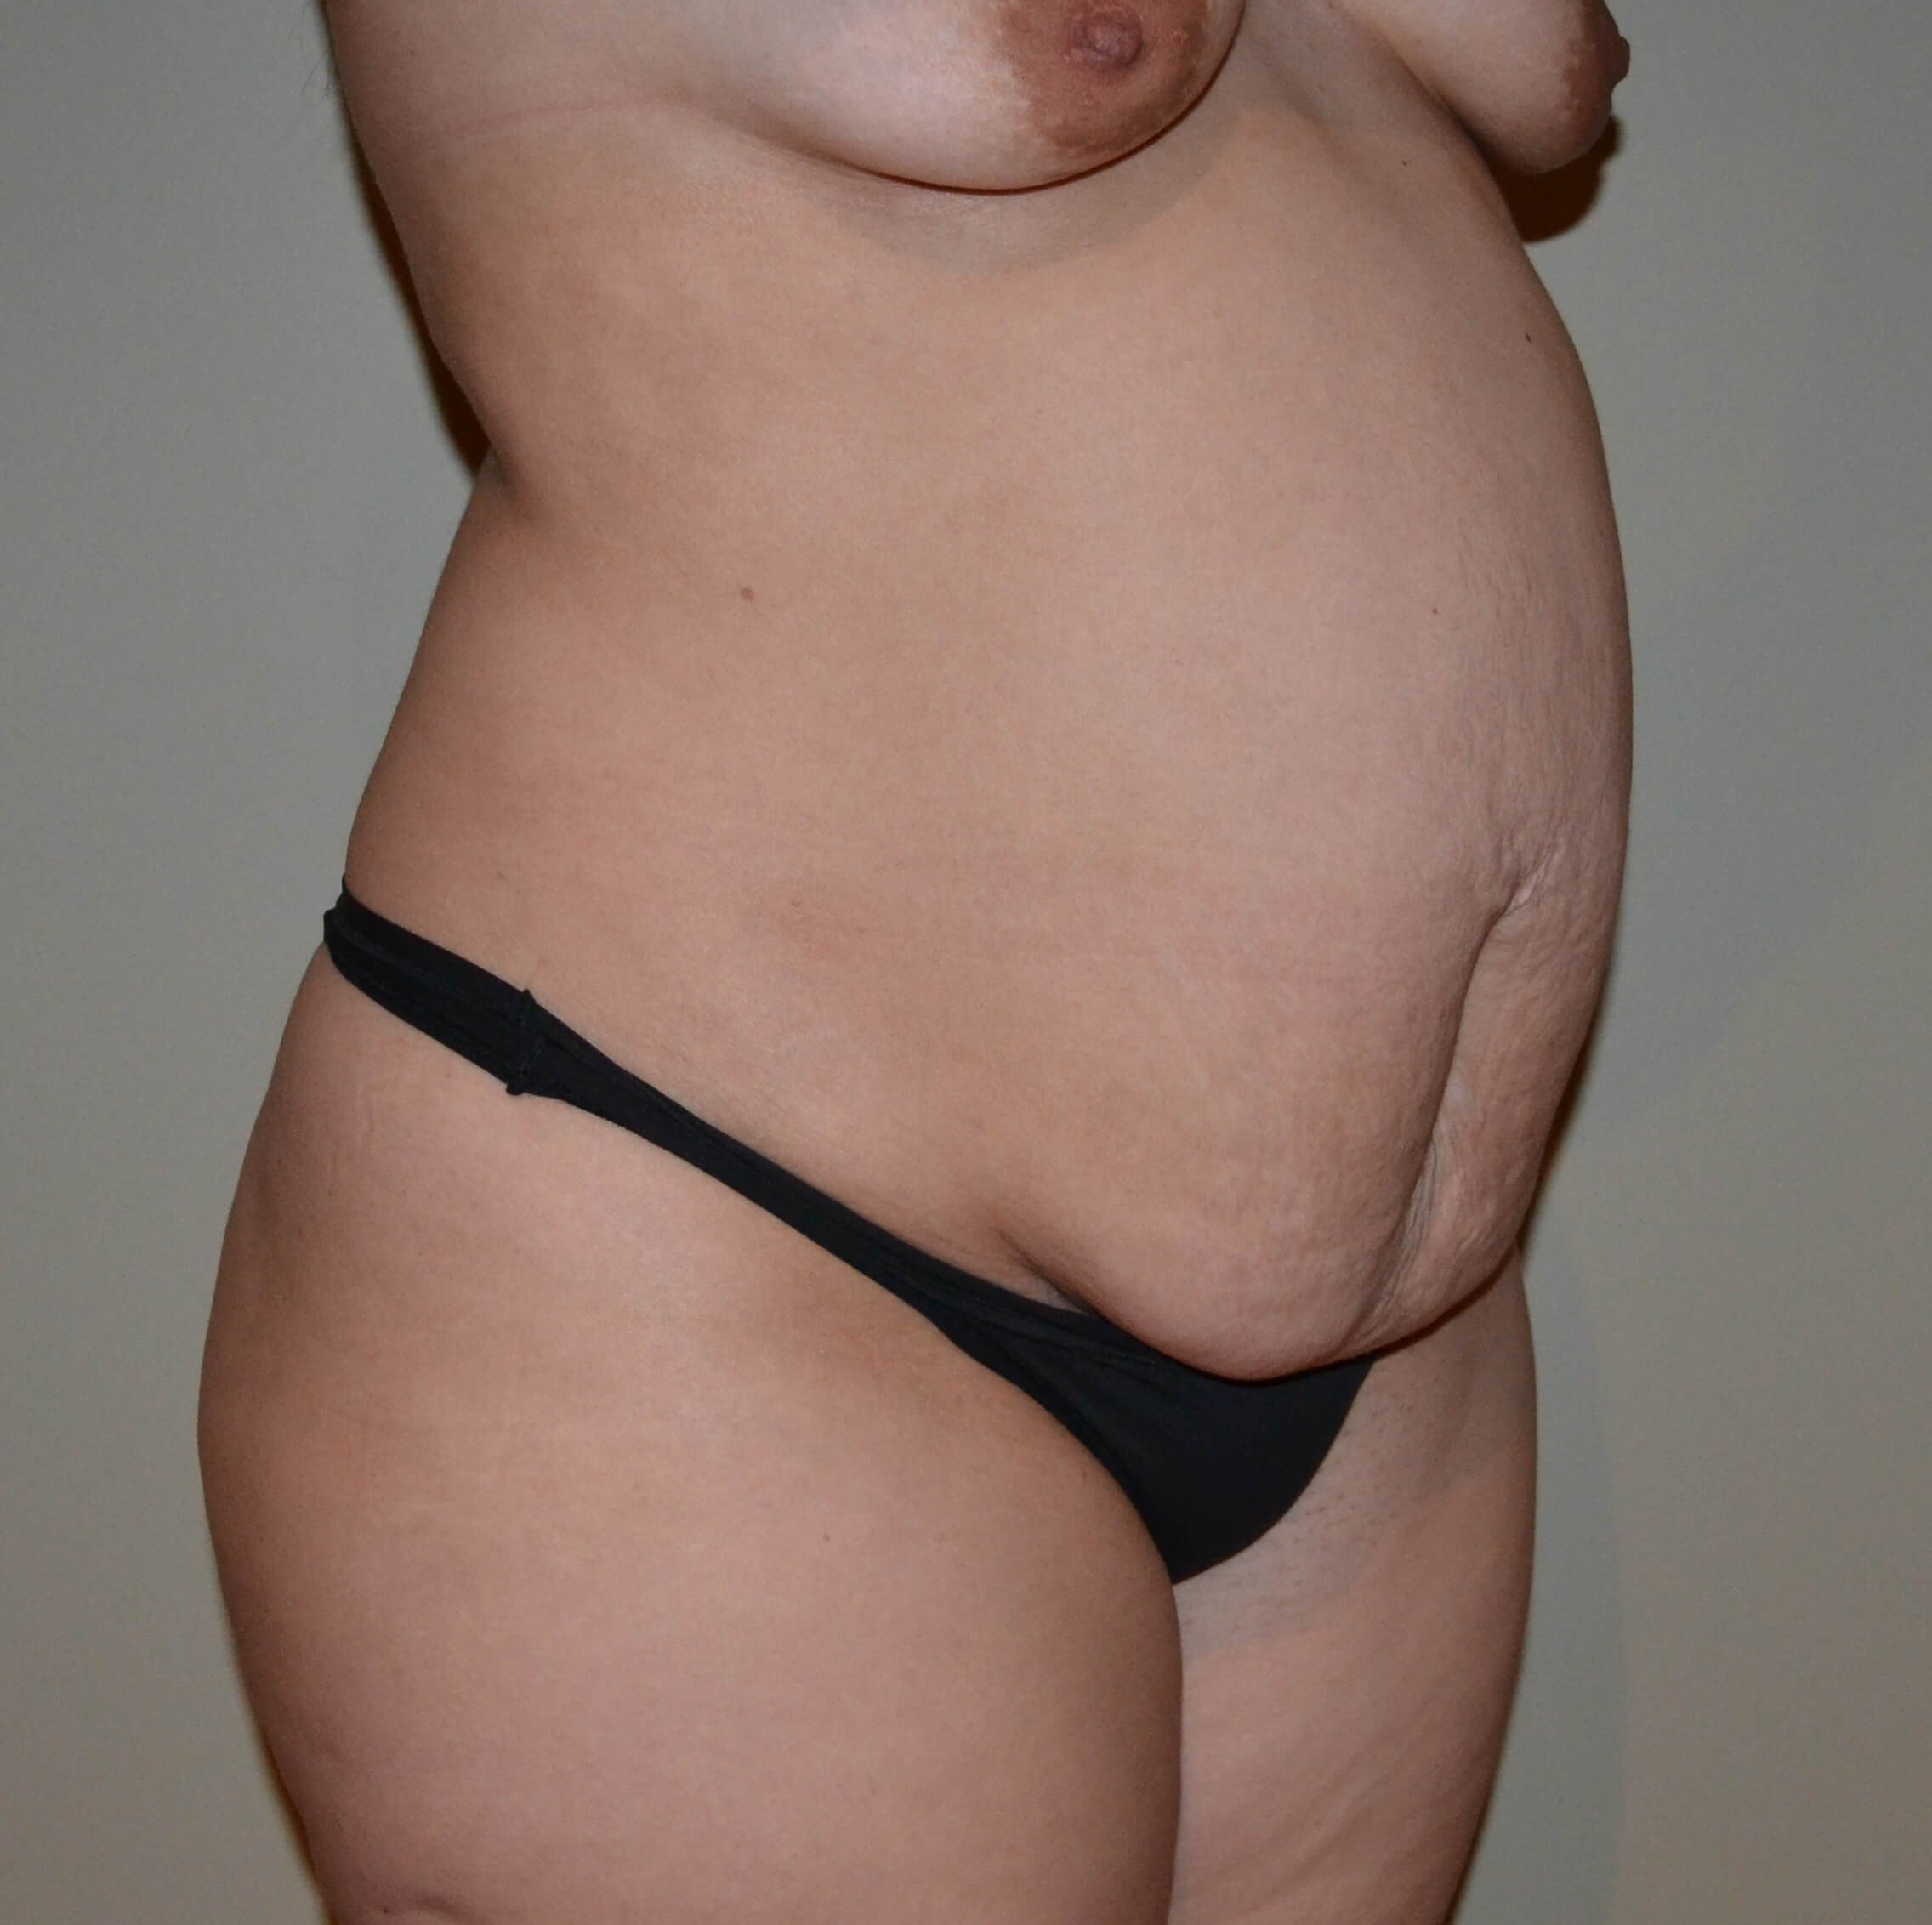 Tummy tuck Before, frontal 3/4 view